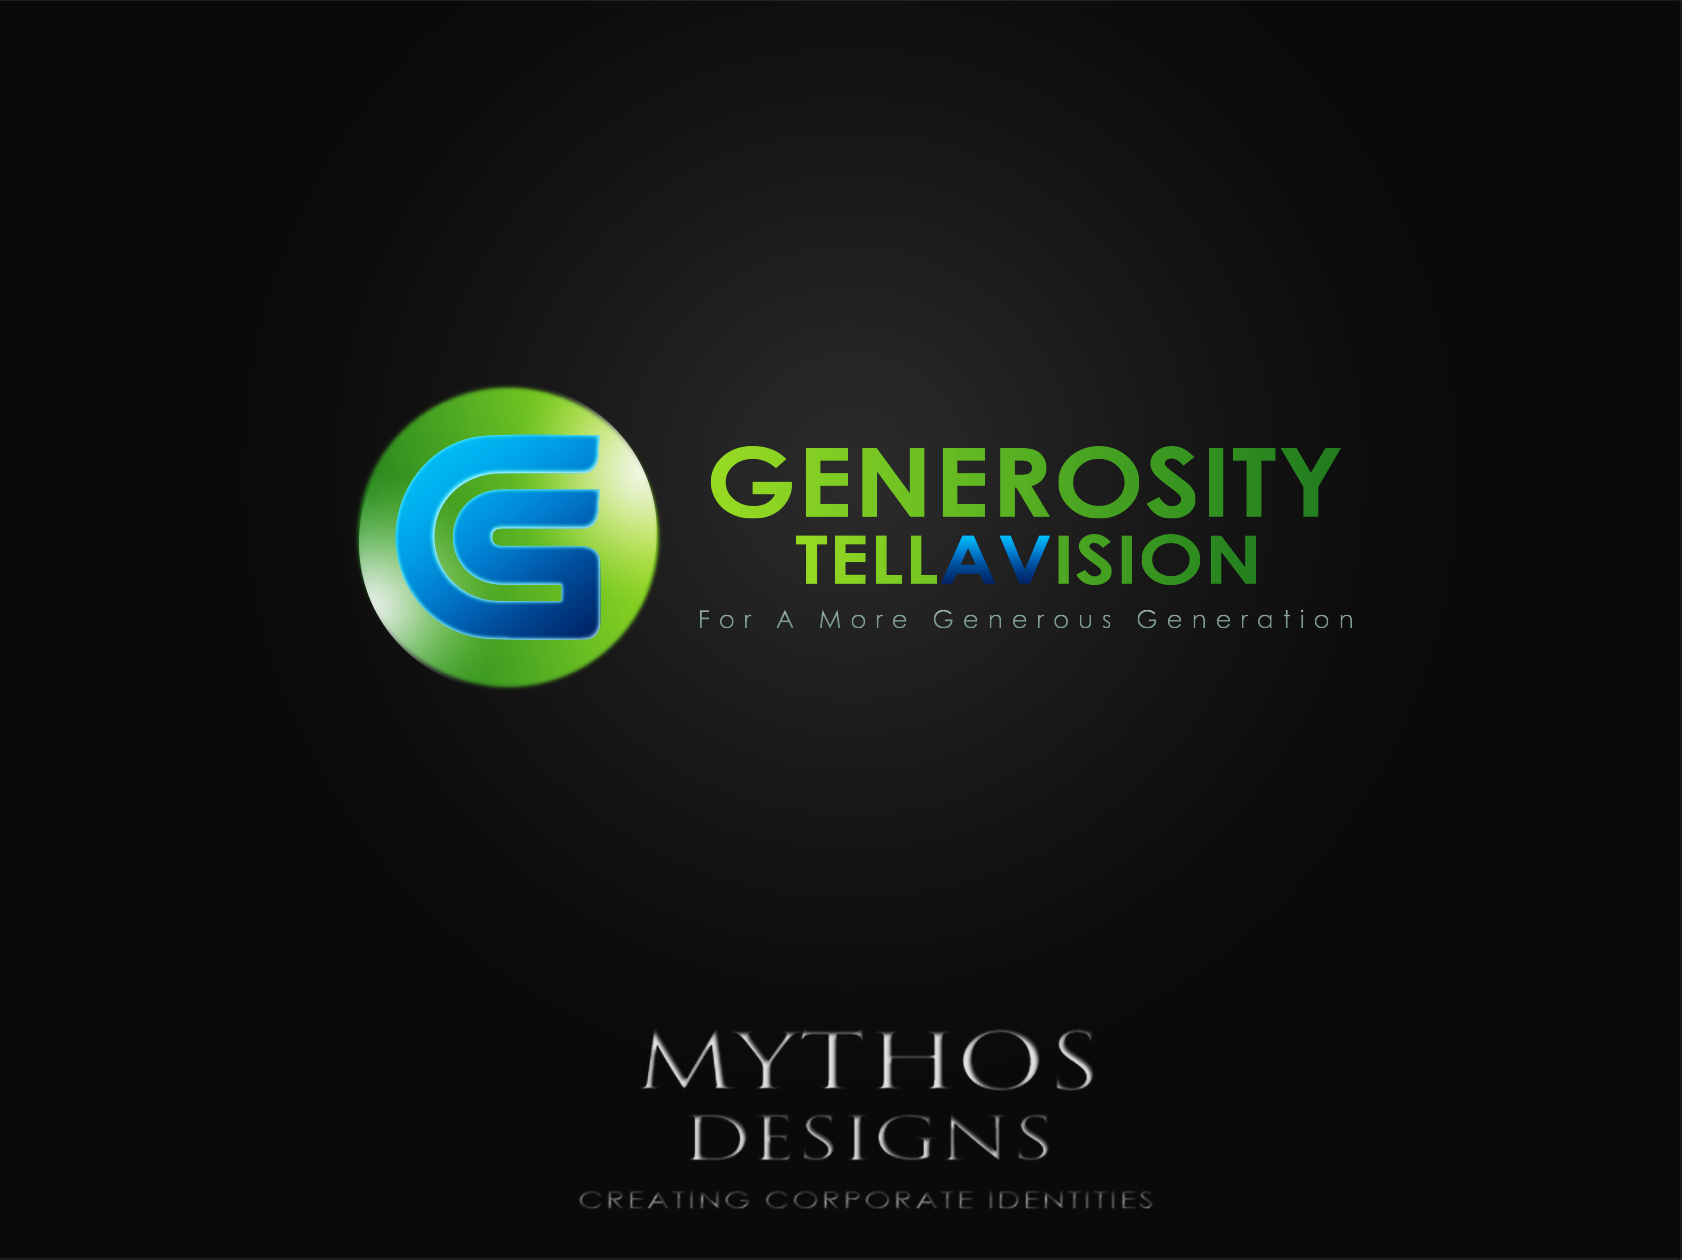 Logo Design by Mythos Designs - Entry No. 83 in the Logo Design Contest Artistic Logo Design for Generosity TellAVision.